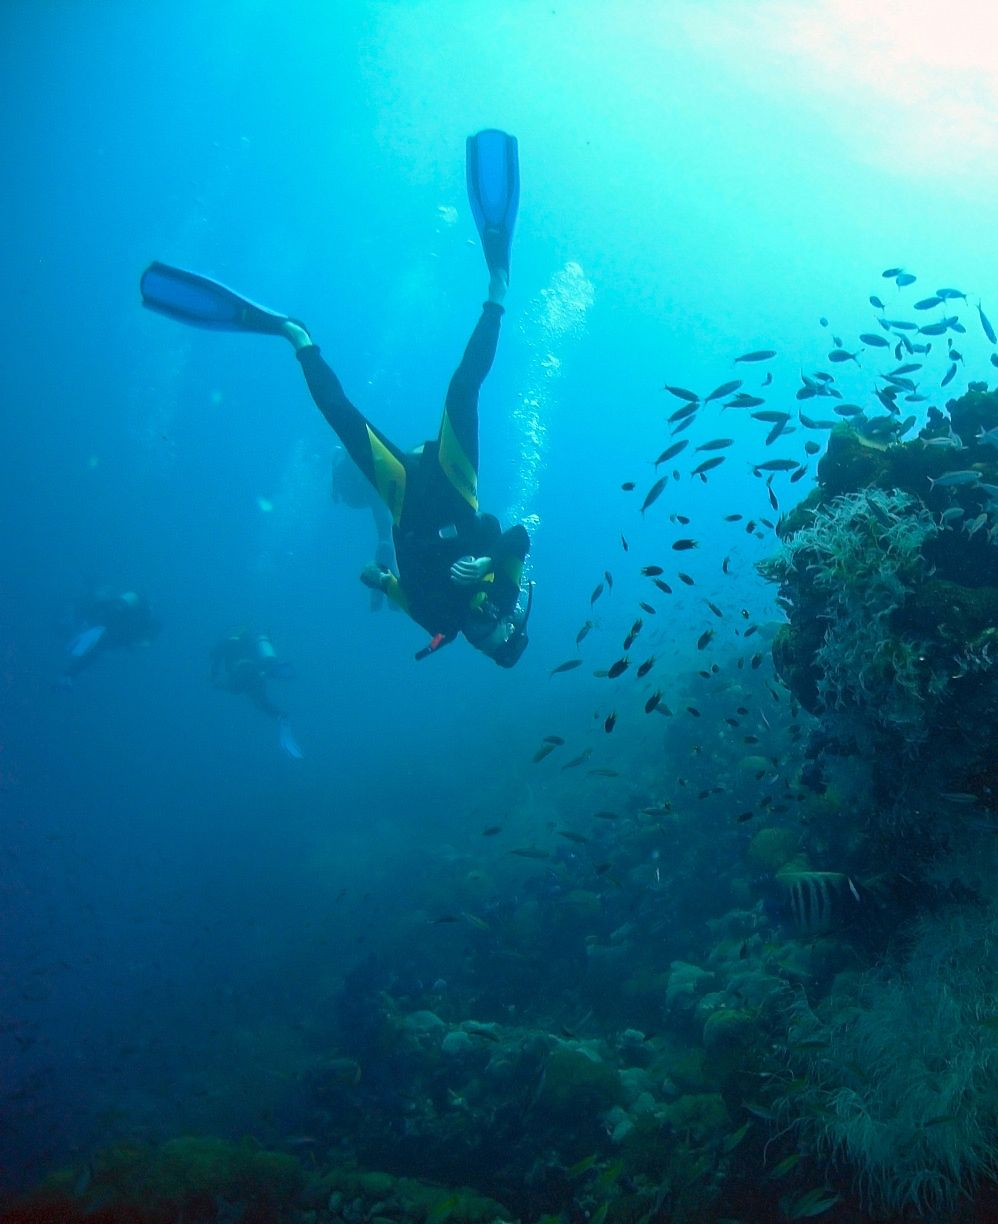 Red Sea vacations are all about relaxation at the beach. Scuba diving is a highly recommended experience >> http://www.egypttoursplus.com/category/travel-to-egypt/red-sea-holidays/